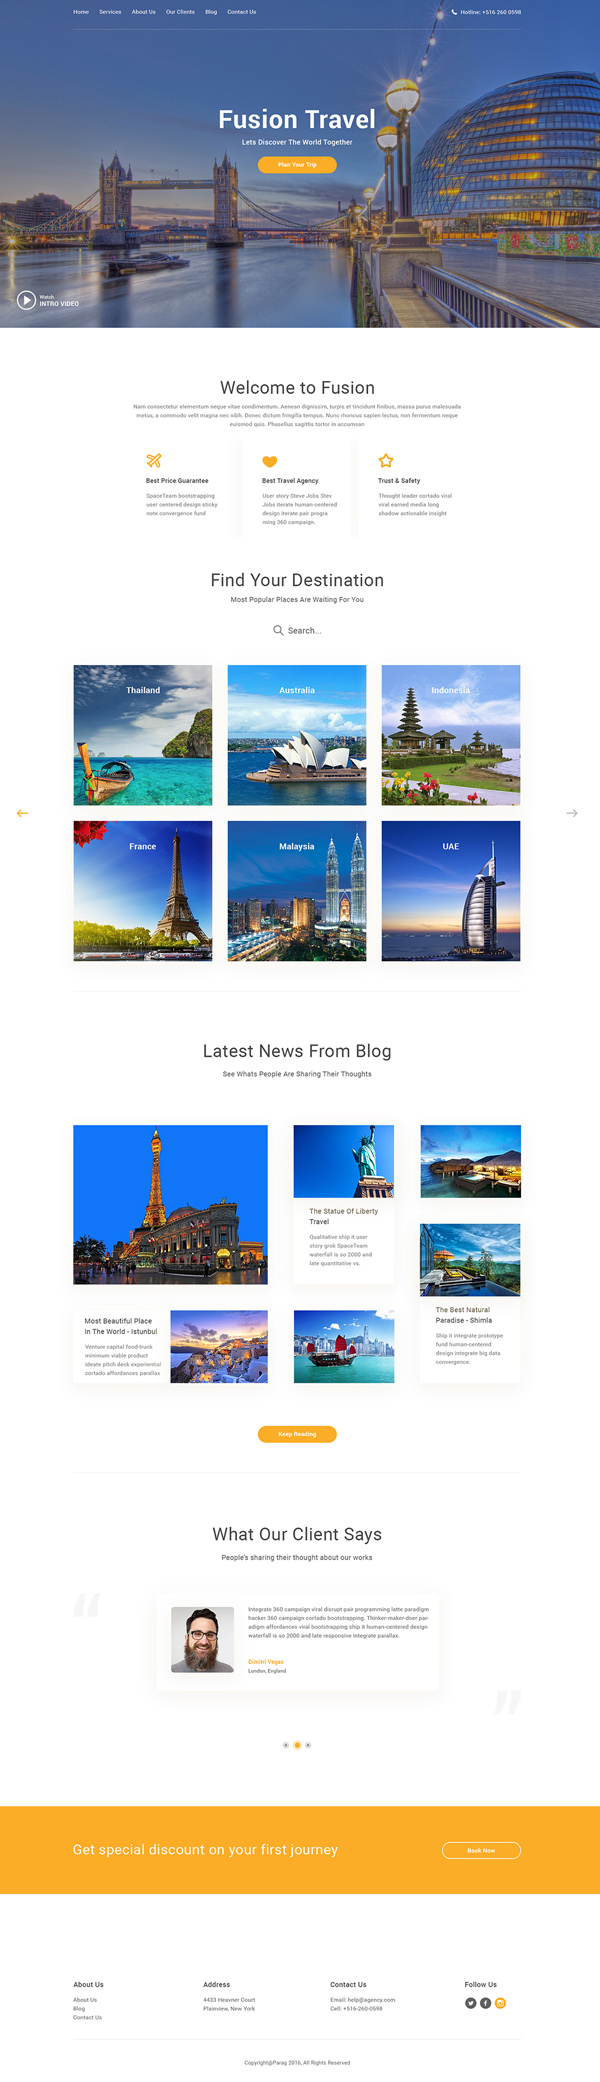 Fusion: Travel Agency Free Web Template